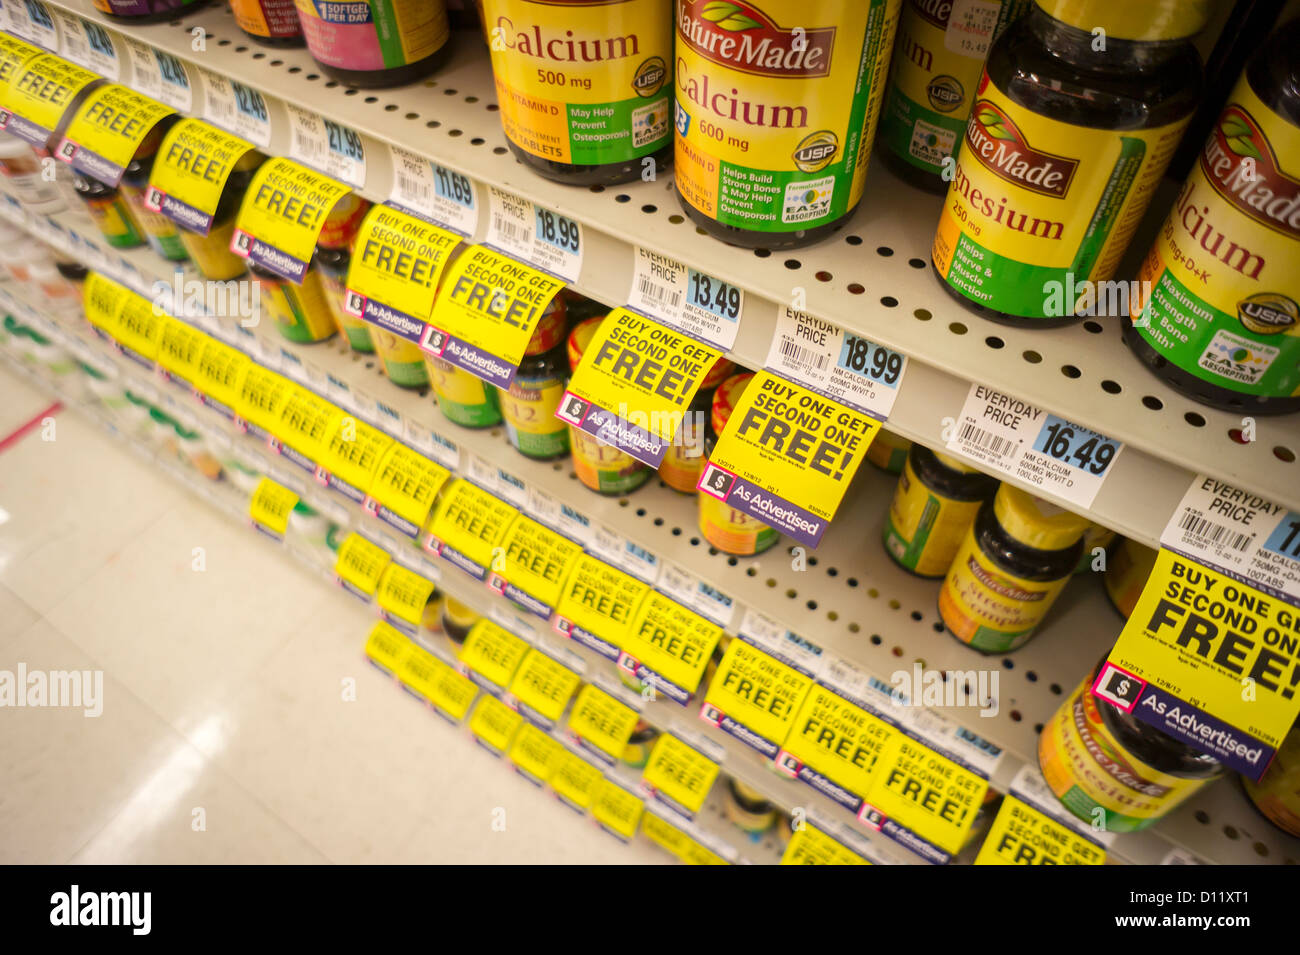 Vitamins and other supplements are seen on the shelves of a drugstore in New York - Stock Image